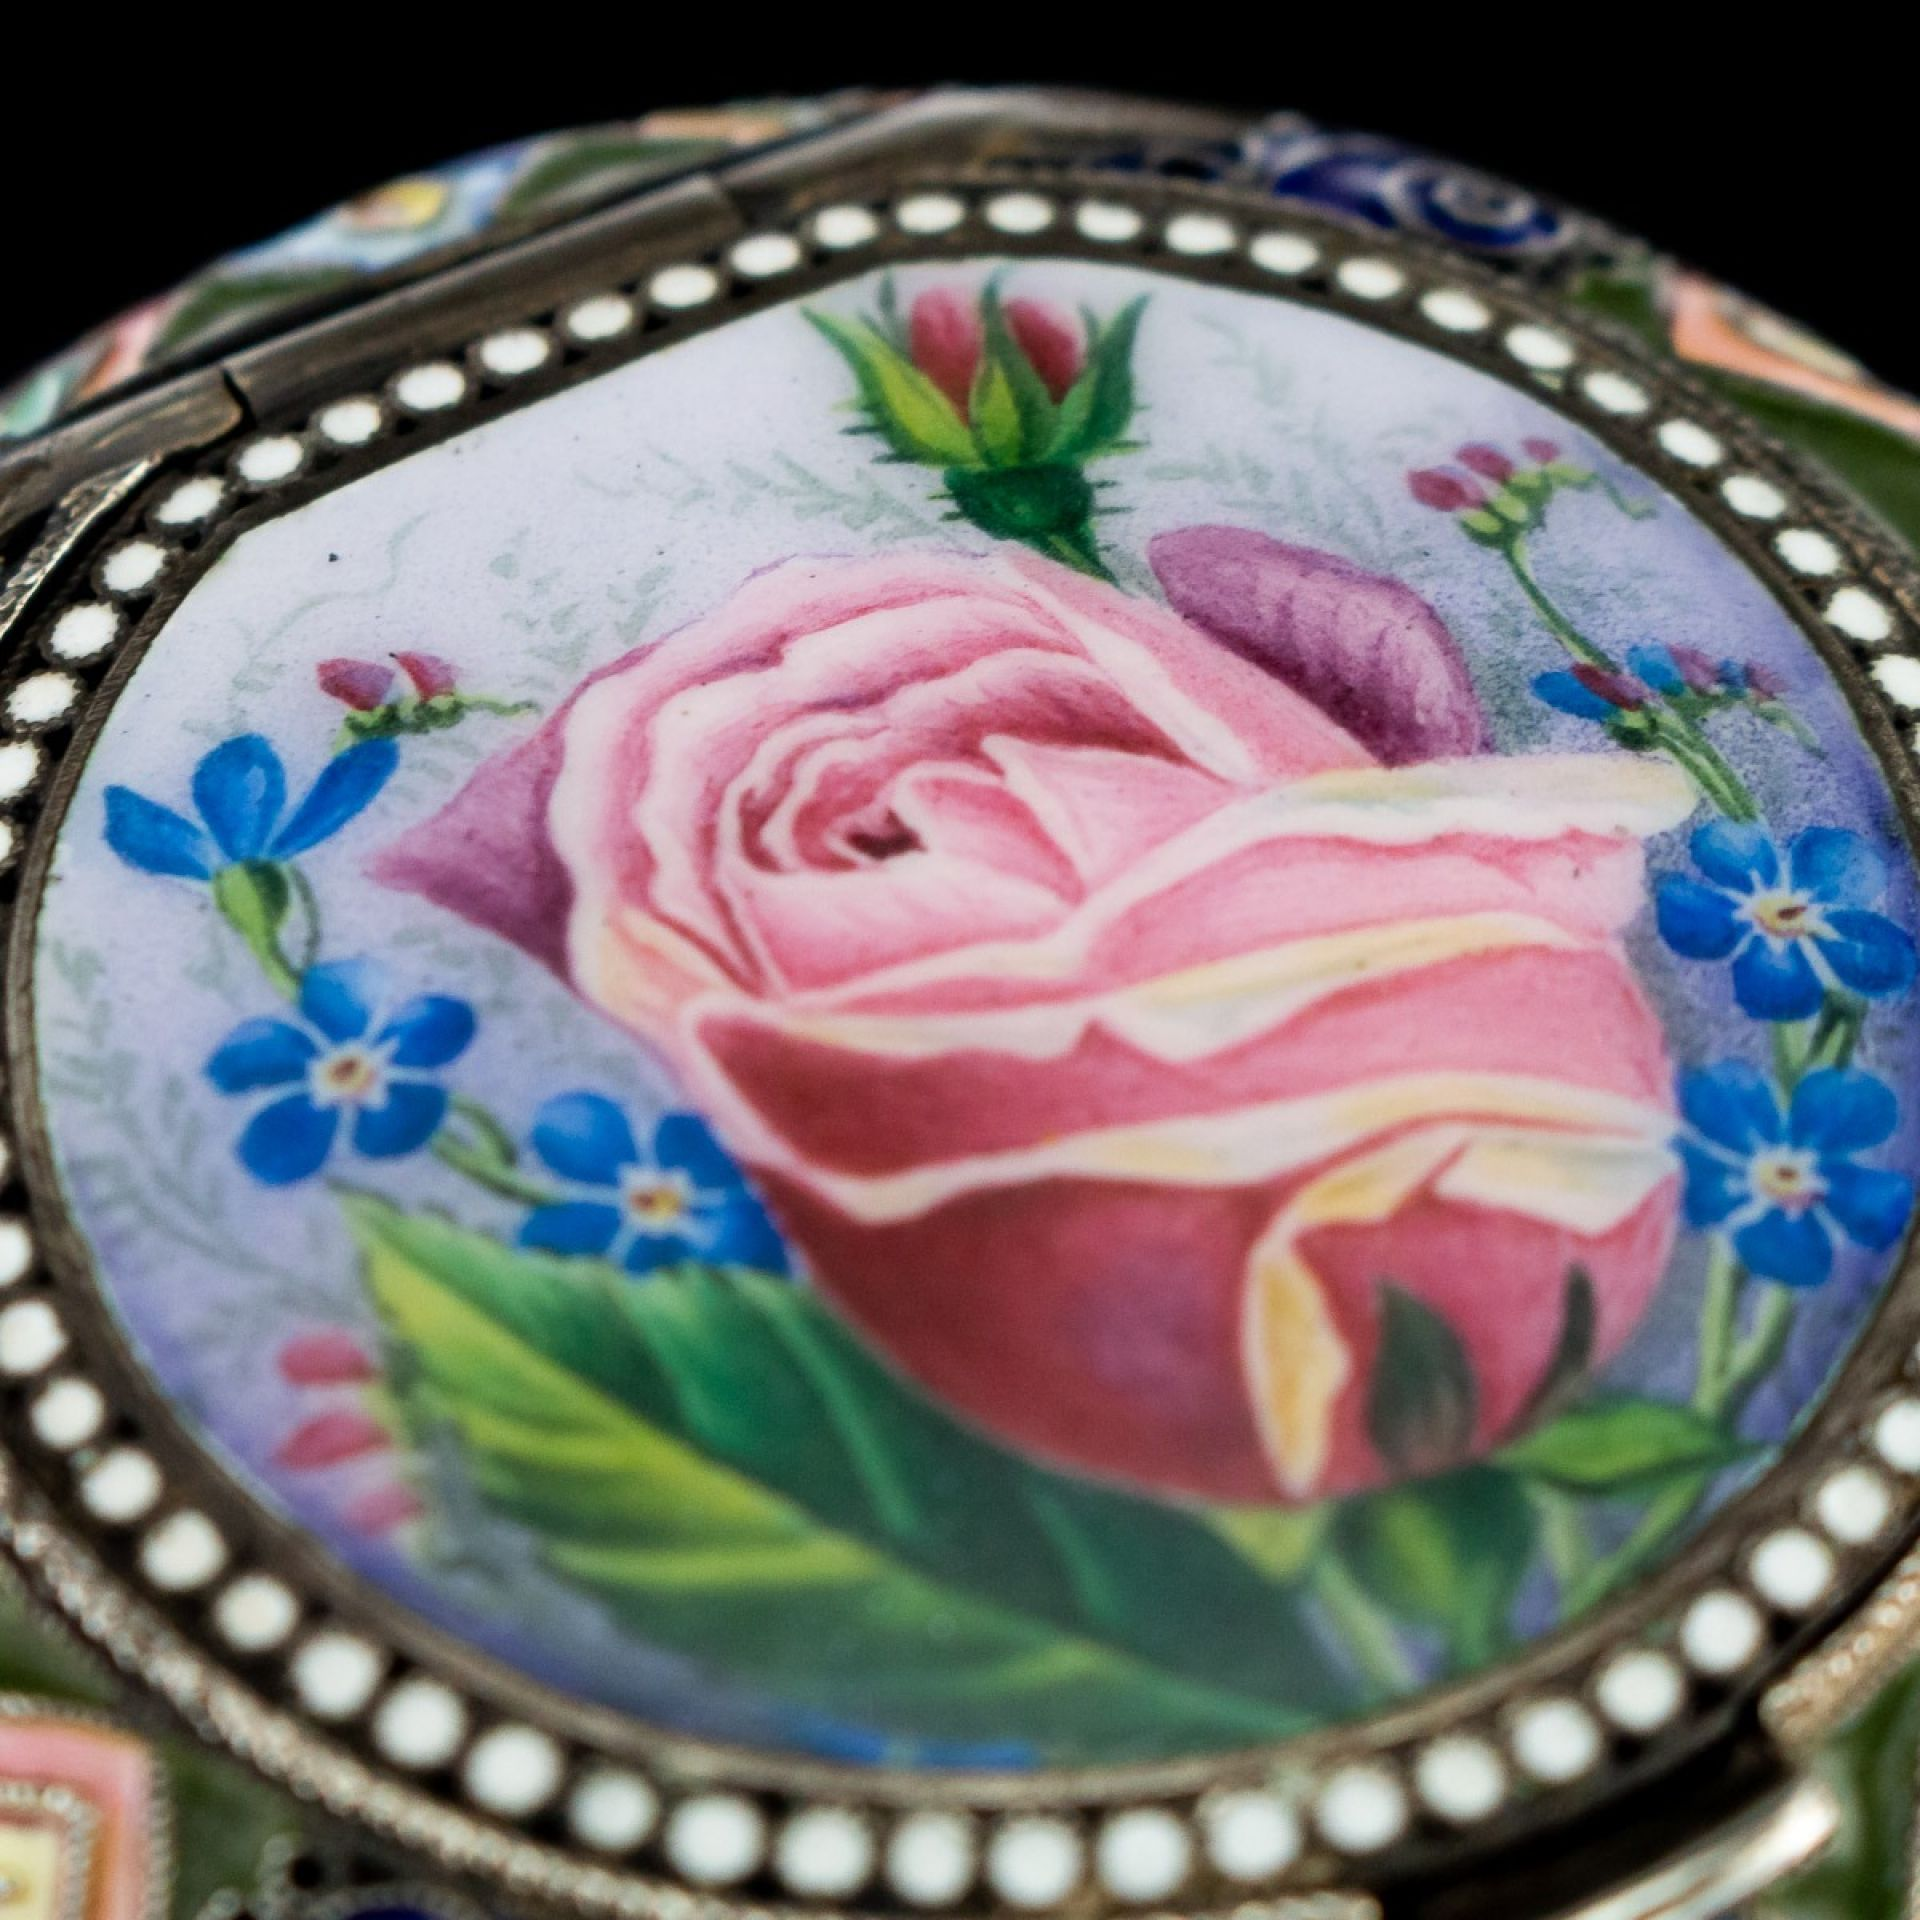 ANTIQUE 20thC RUSSIAN SOLID SILVER & PICTORIAL ENAMEL PILL BOX, 20 ARTEL c.1910